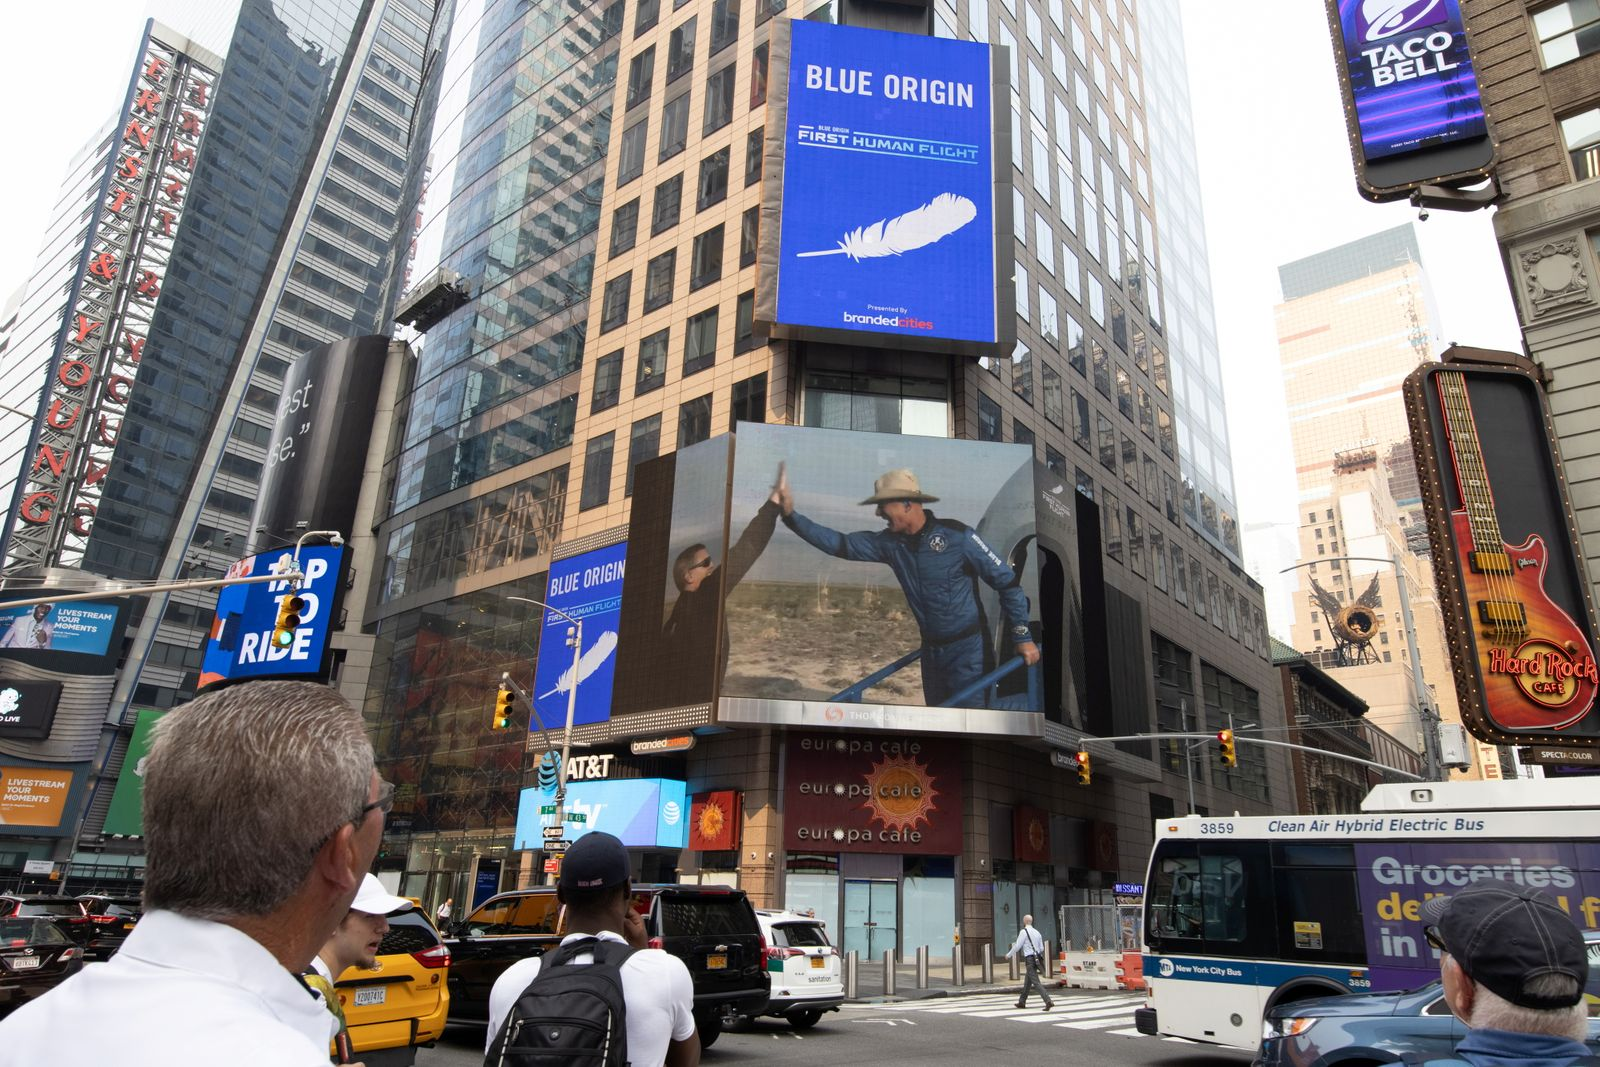 People watch the launch of Blue Origin's inaugural flight to the edge of space, on a screen in Times Square in New York